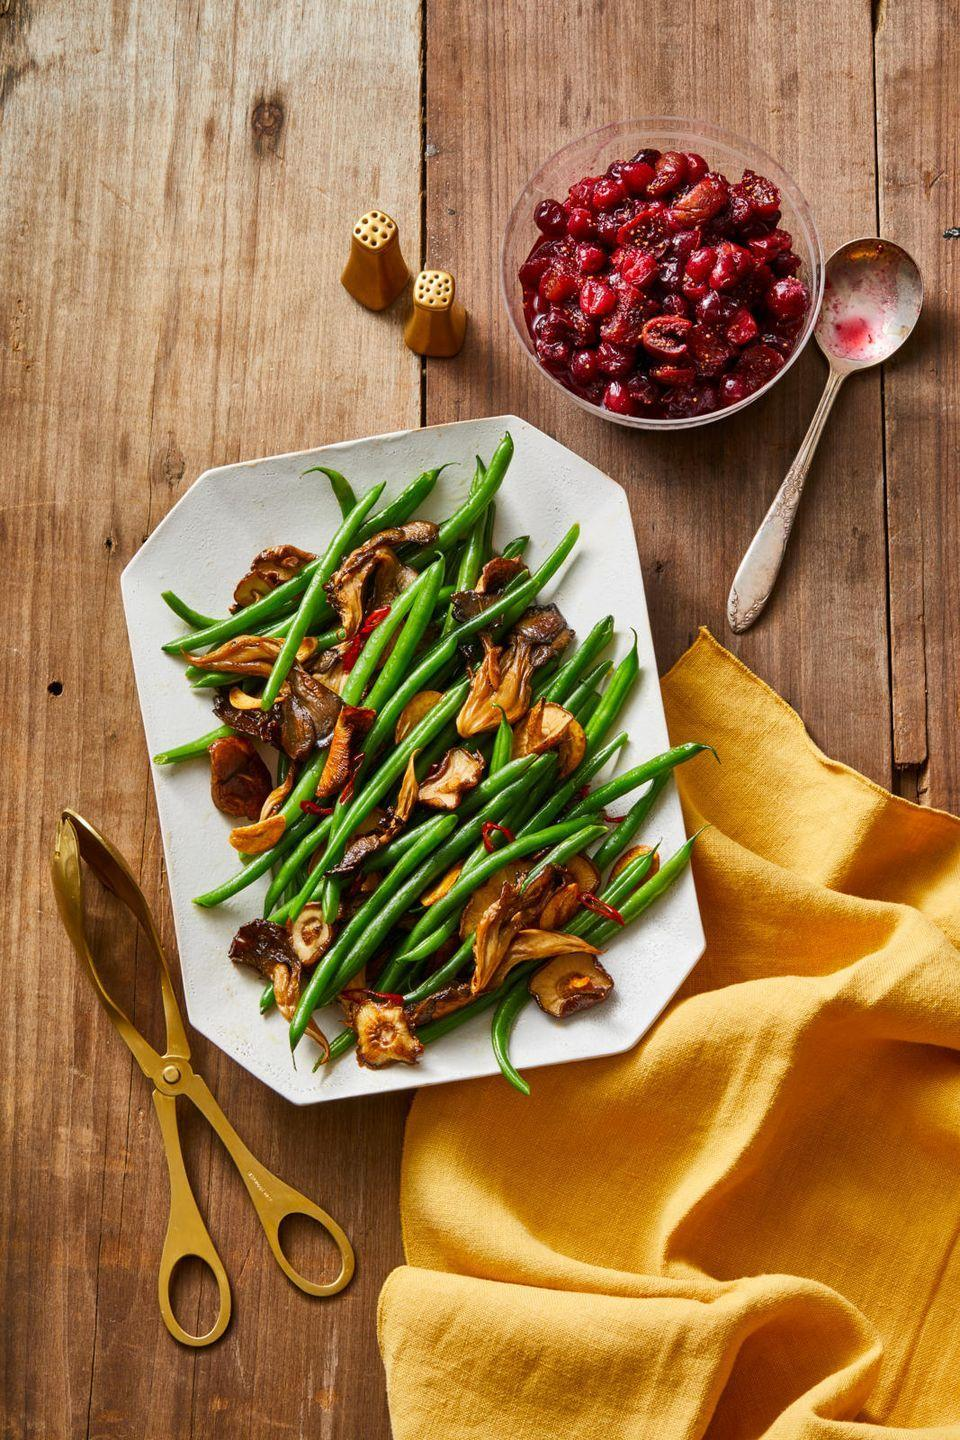 """<p>It's the ultimate side dish; ready in under half-an-hour, can be roasted in the oven while you work the stovetop, and clears out your veggie drawer.</p><p><a href=""""https://www.goodhousekeeping.com/food-recipes/a34360532/chile-garlic-green-beans-recipe/"""" rel=""""nofollow noopener"""" target=""""_blank"""" data-ylk=""""slk:Get the recipe for Mushroom and Chile-Garlic Green Beans »"""" class=""""link rapid-noclick-resp""""><em>Get the recipe for Mushroom and Chile-Garlic Green Beans »</em></a><br></p>"""